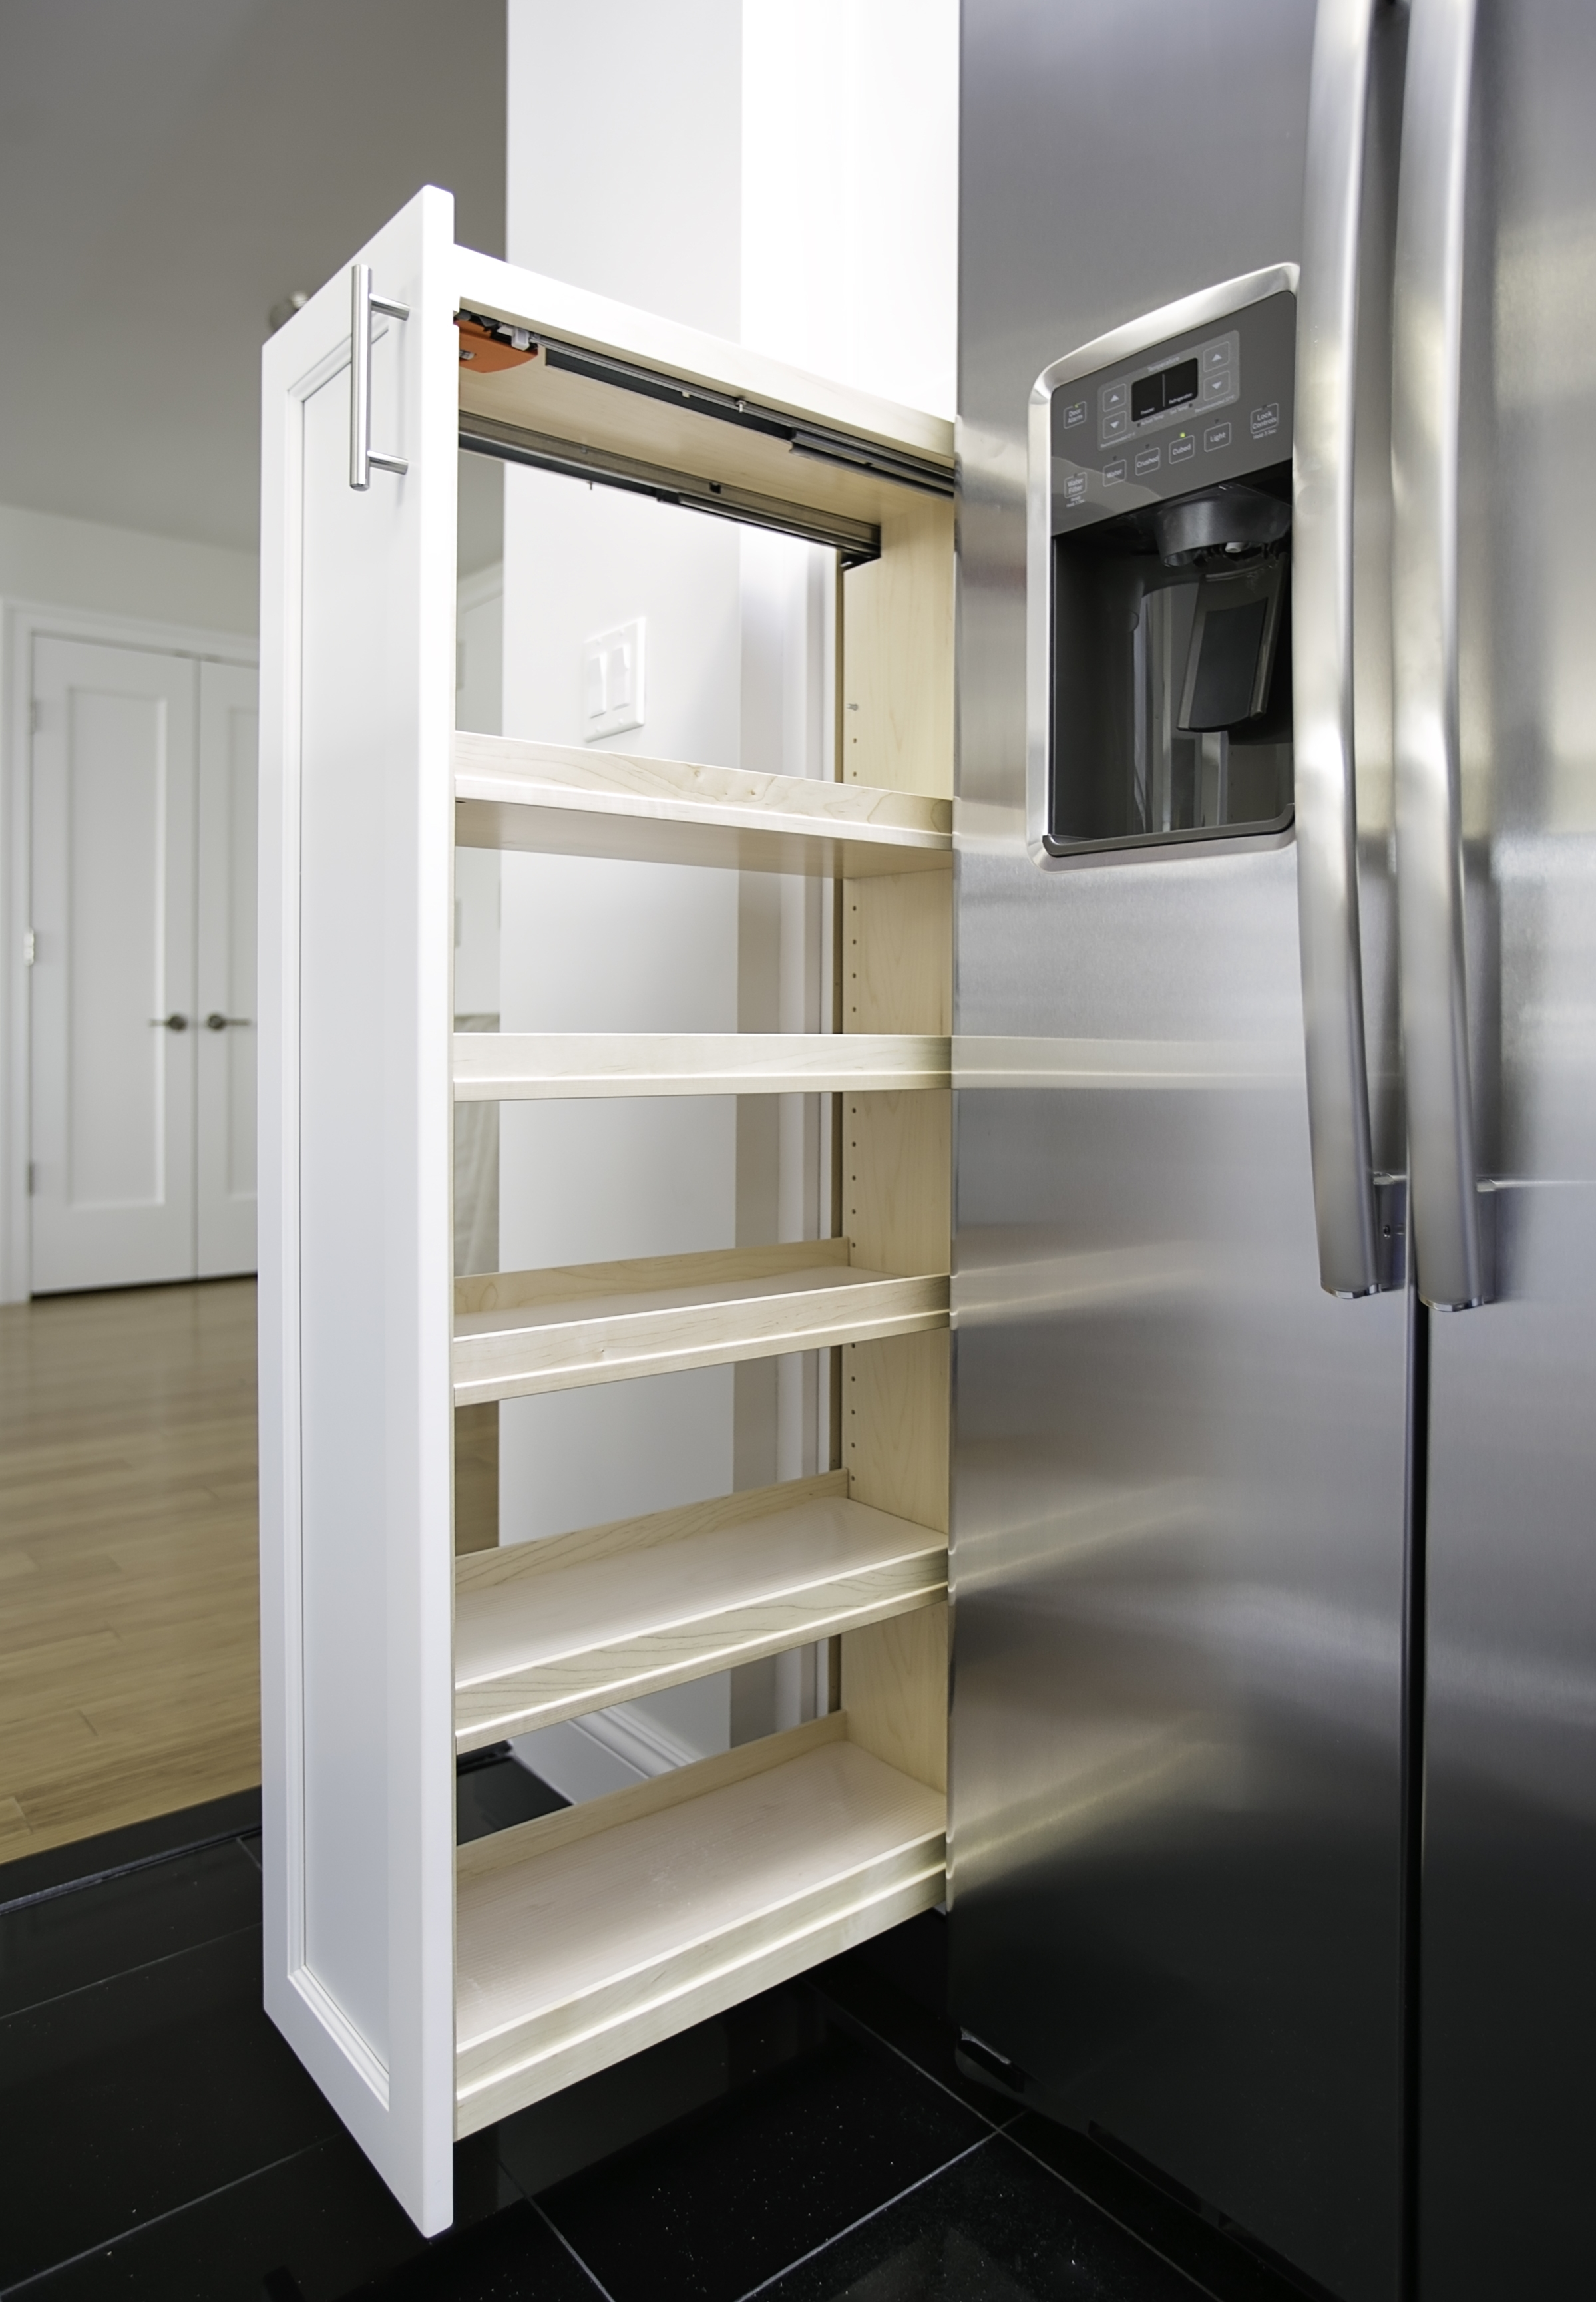 Increase Storage - Conveniently bring kitchen staples right to you.